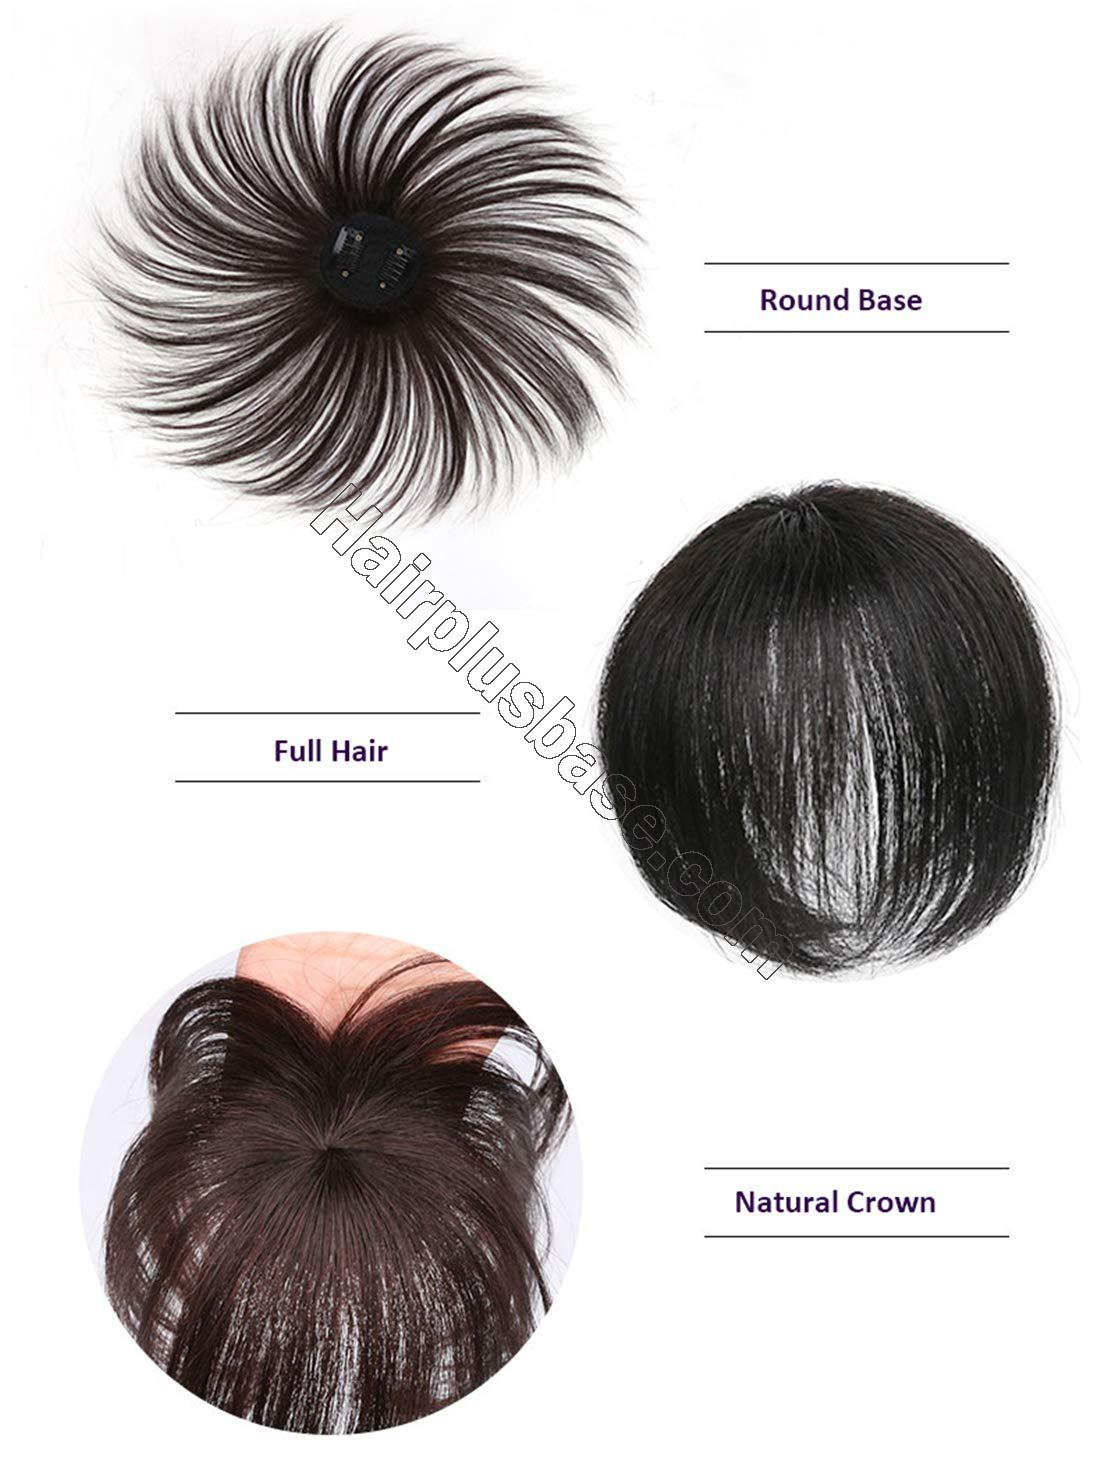 Real Human Hair Crown Toppers for Women with Bald Spot, Clip in Top Hairpieces Toupee for Women 3